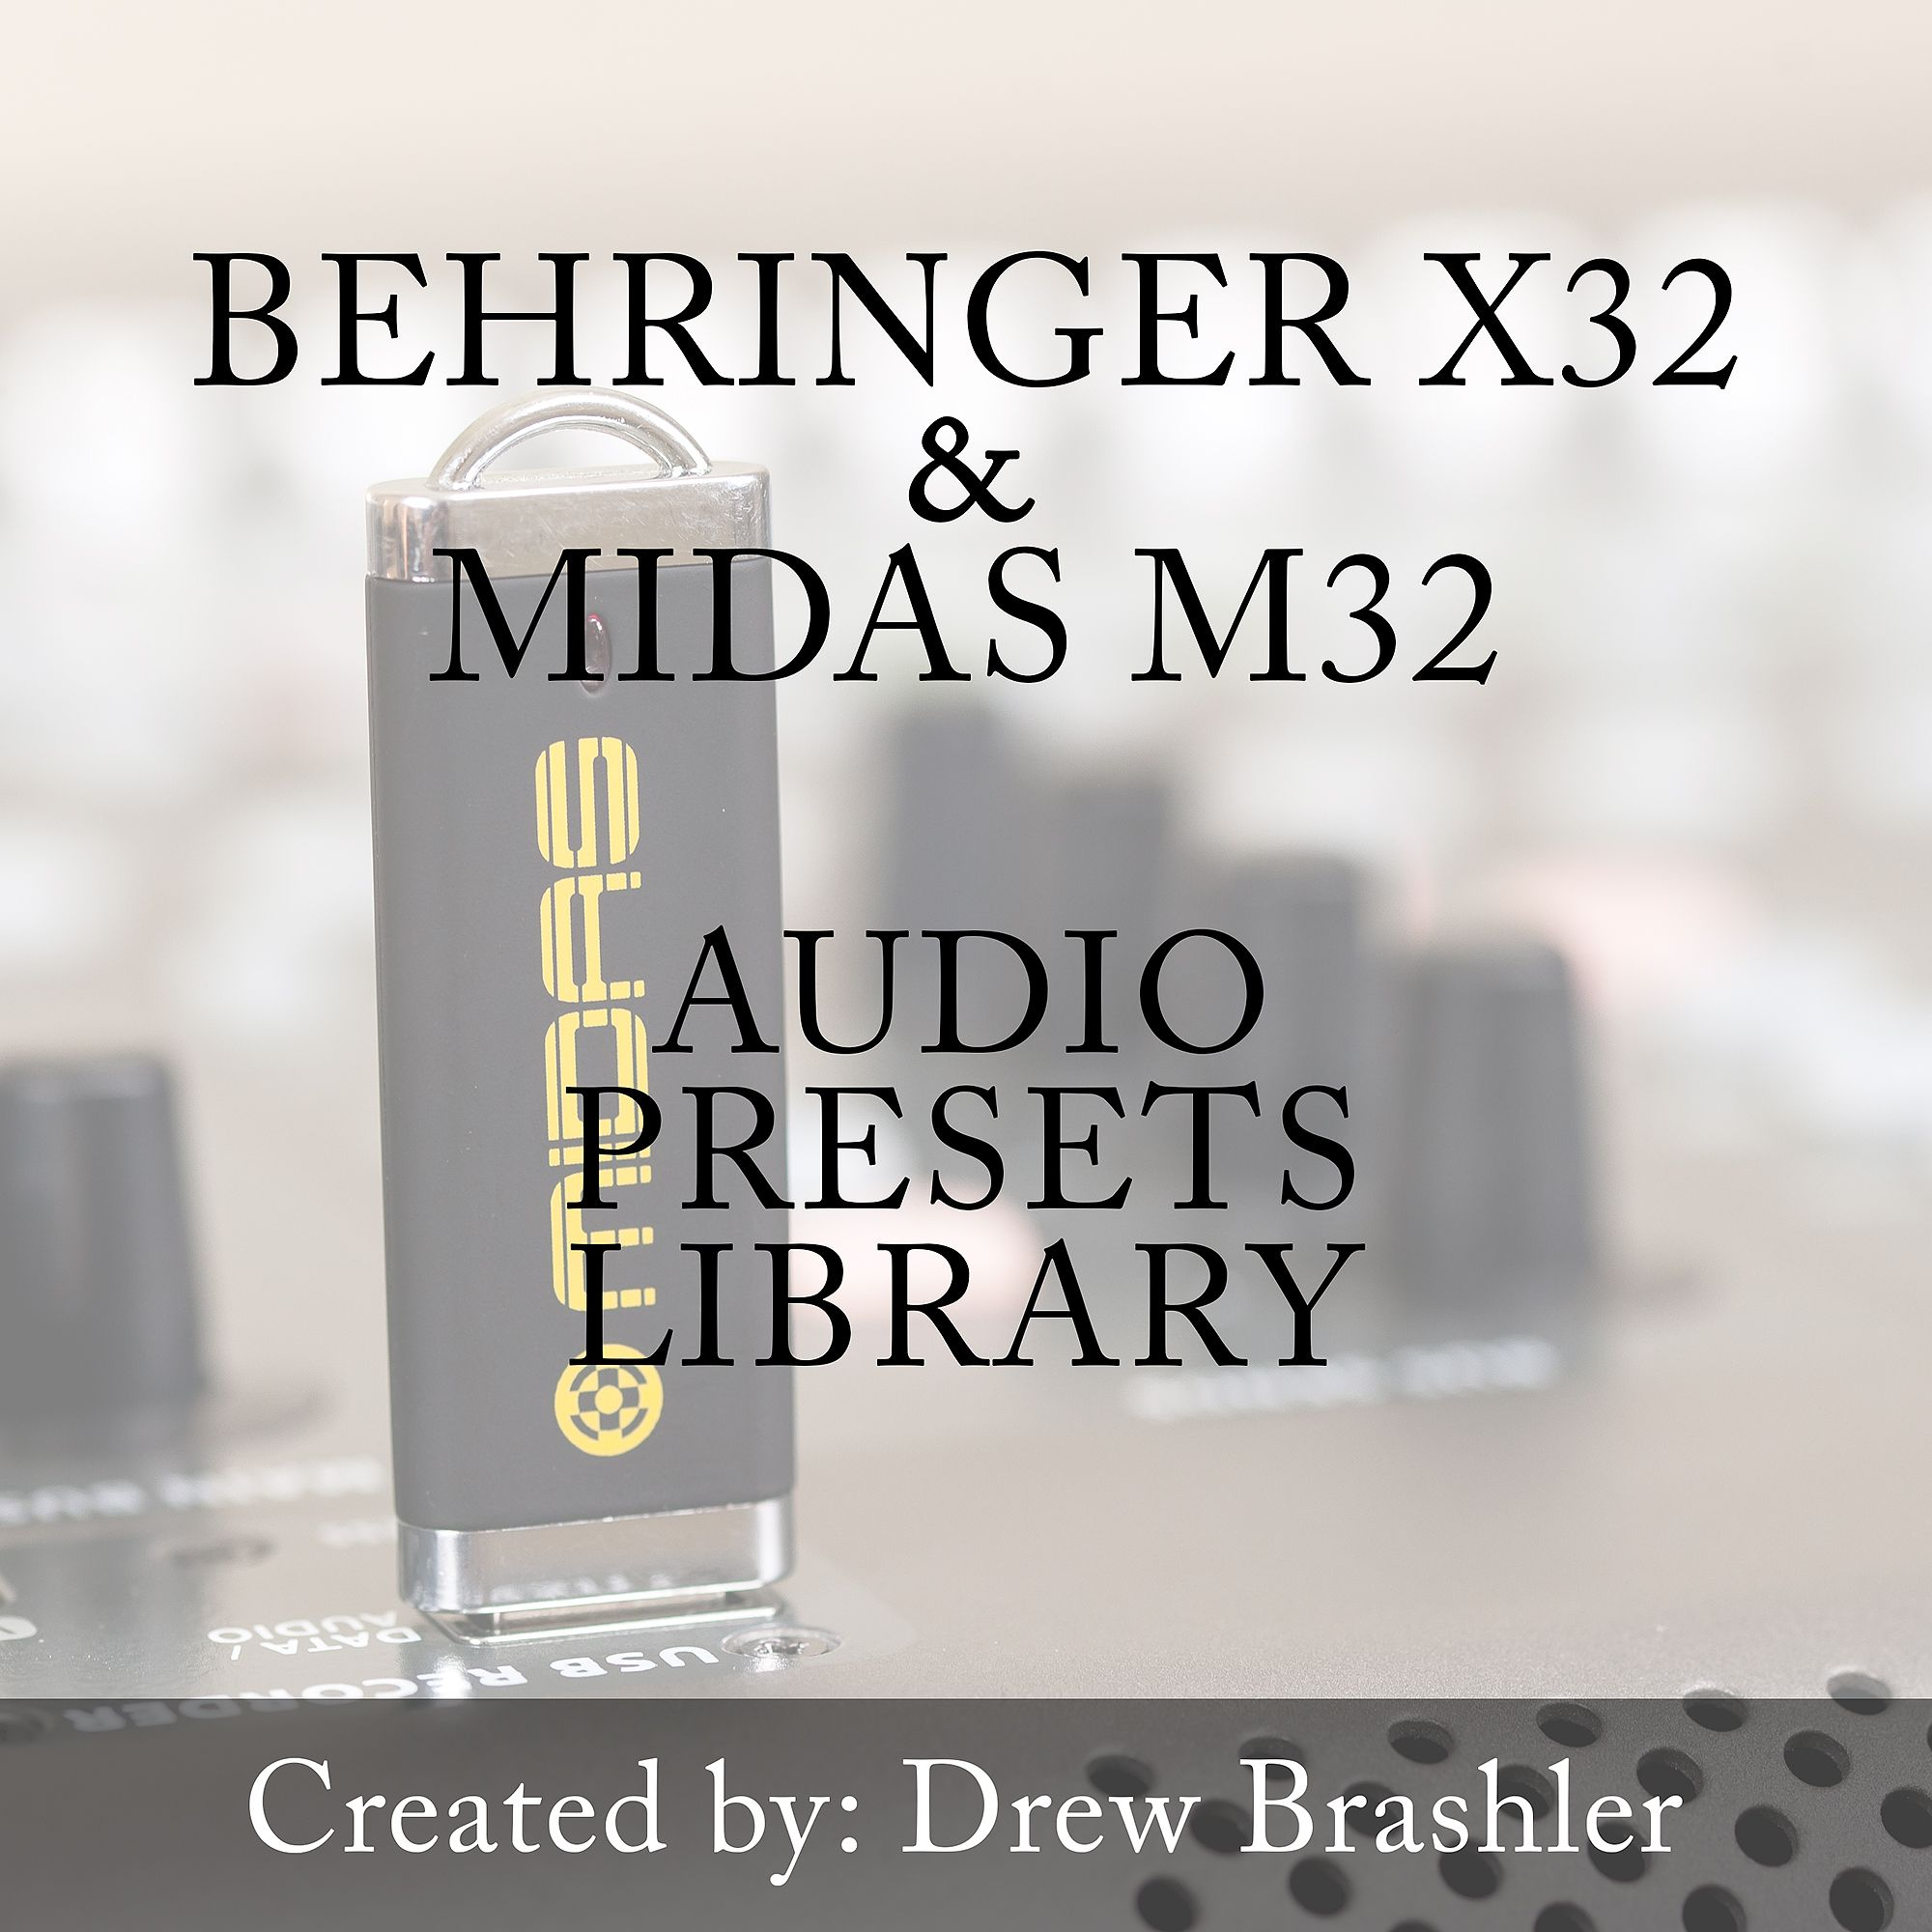 Behringer X32 Presets Library Download in 2019 | Belong - Sound